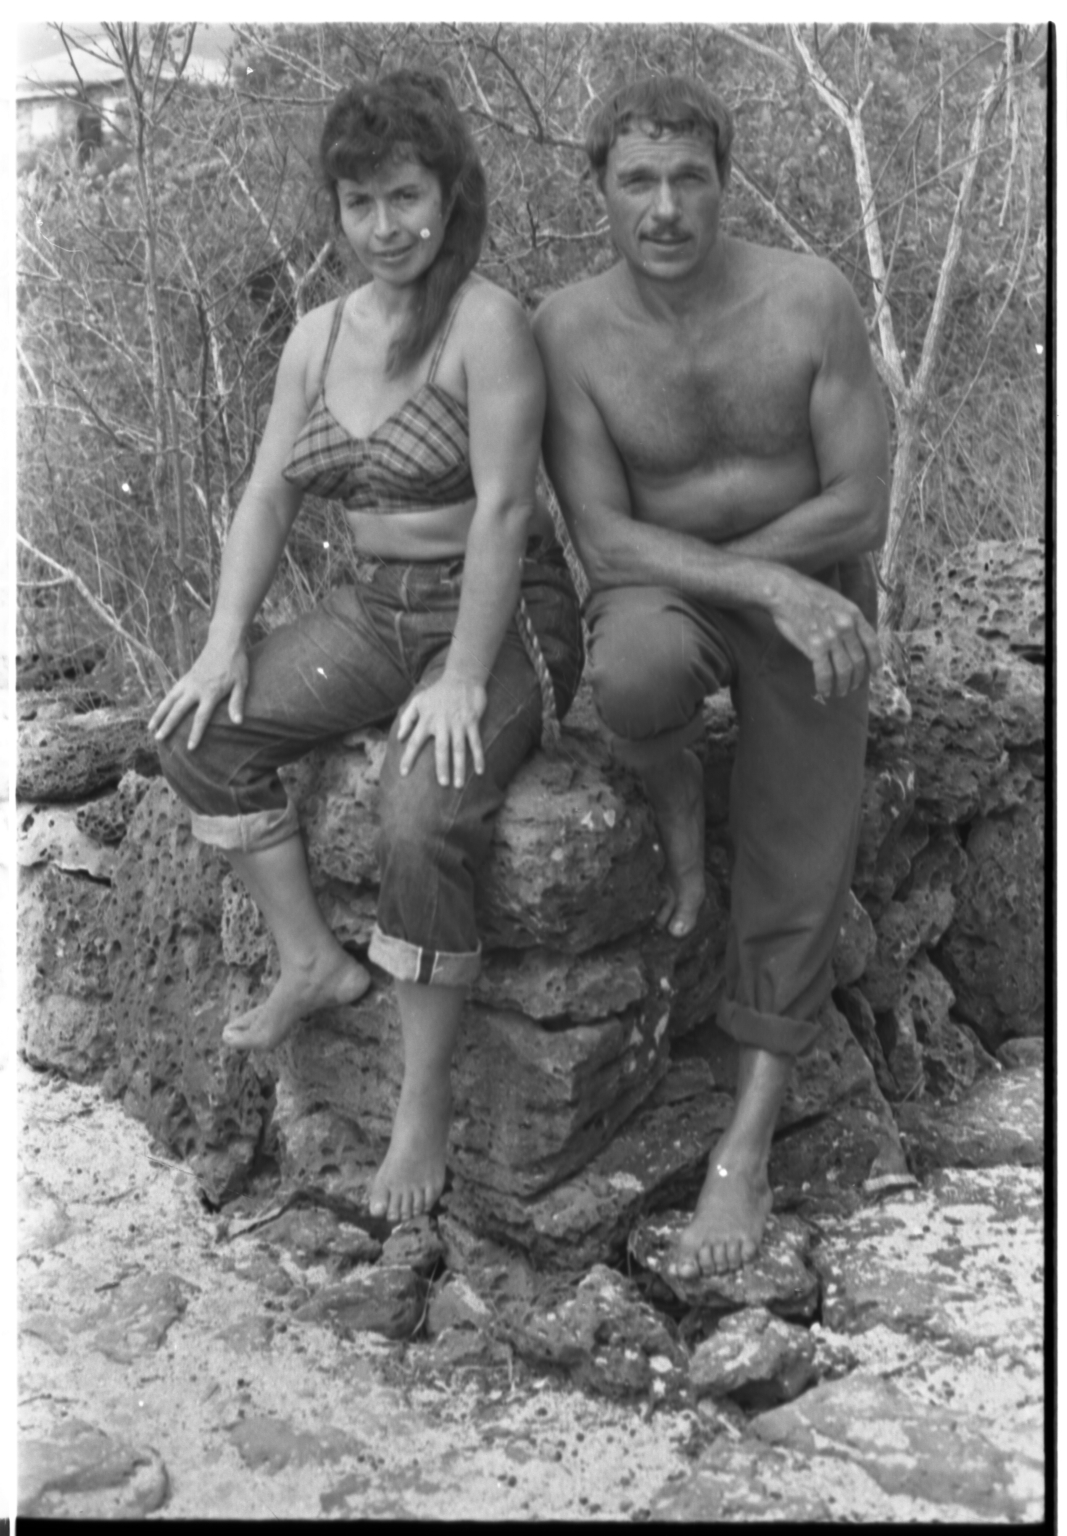 Man and woman in Galapagos Islands.